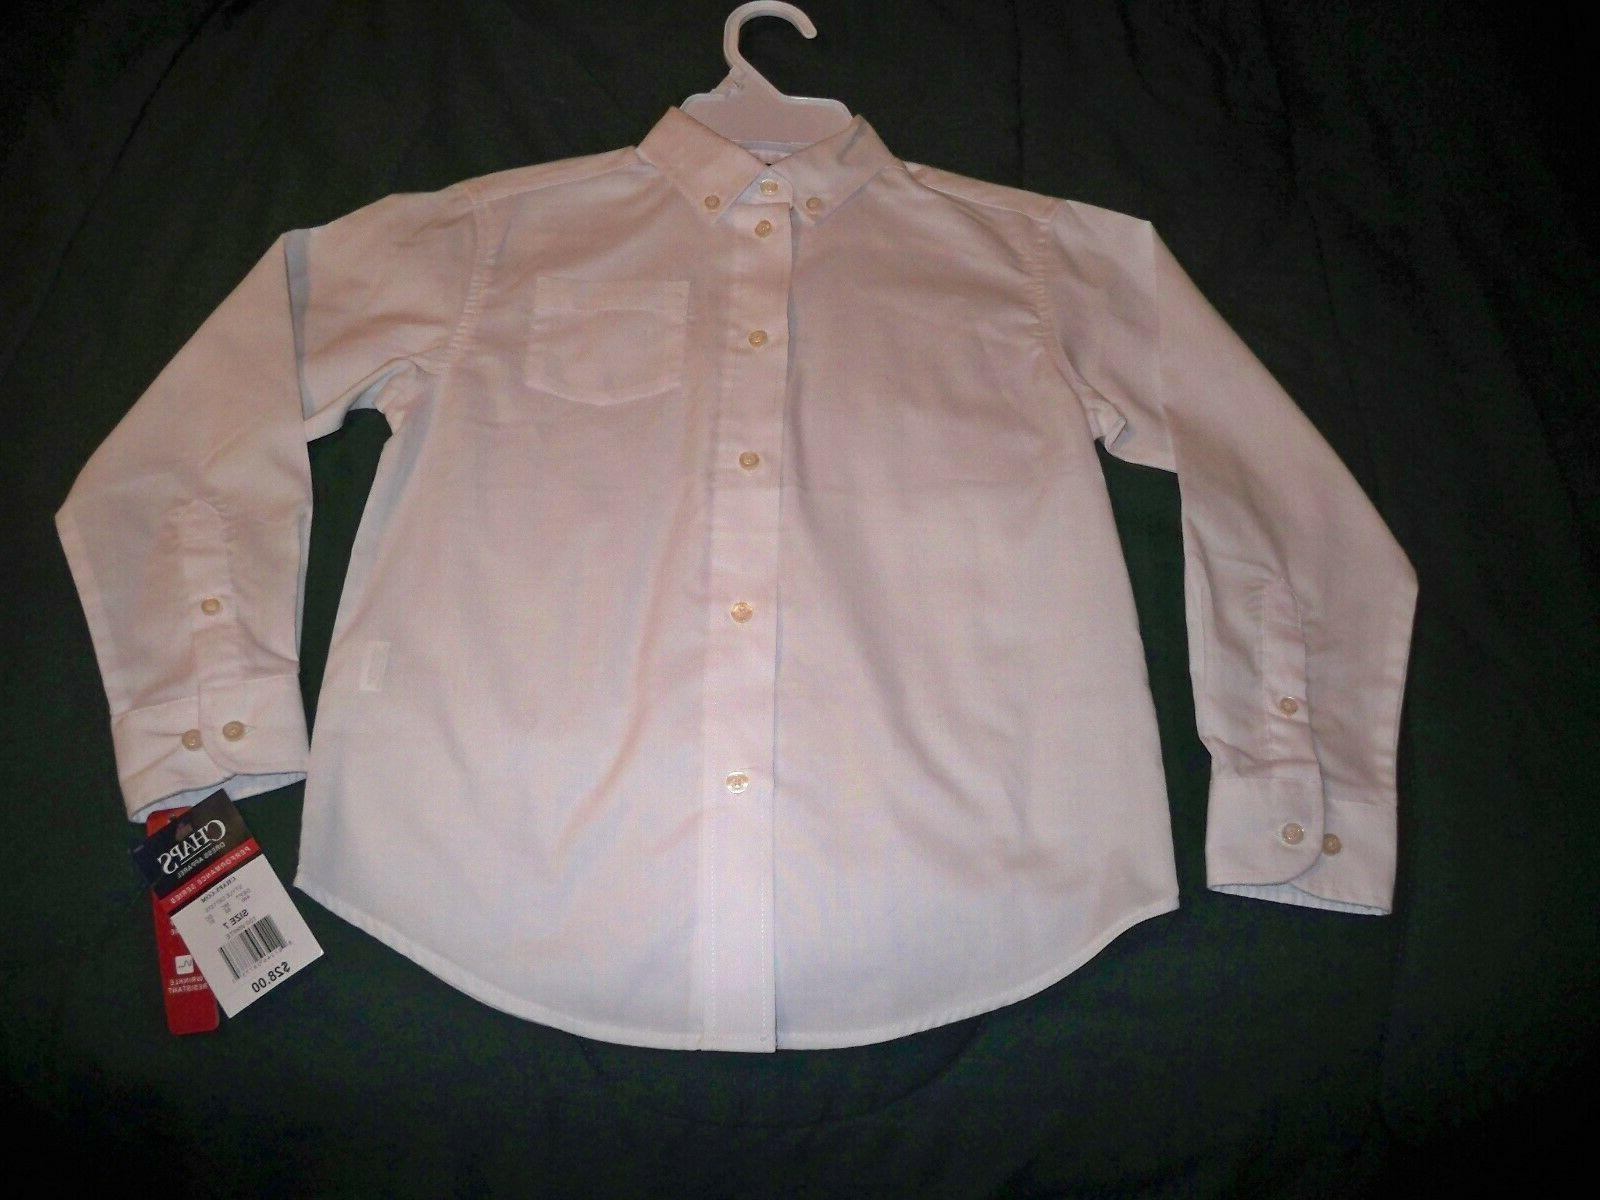 NWT $28 Boys Size 7 CHAPS White Button Up Long Sleeve Dress